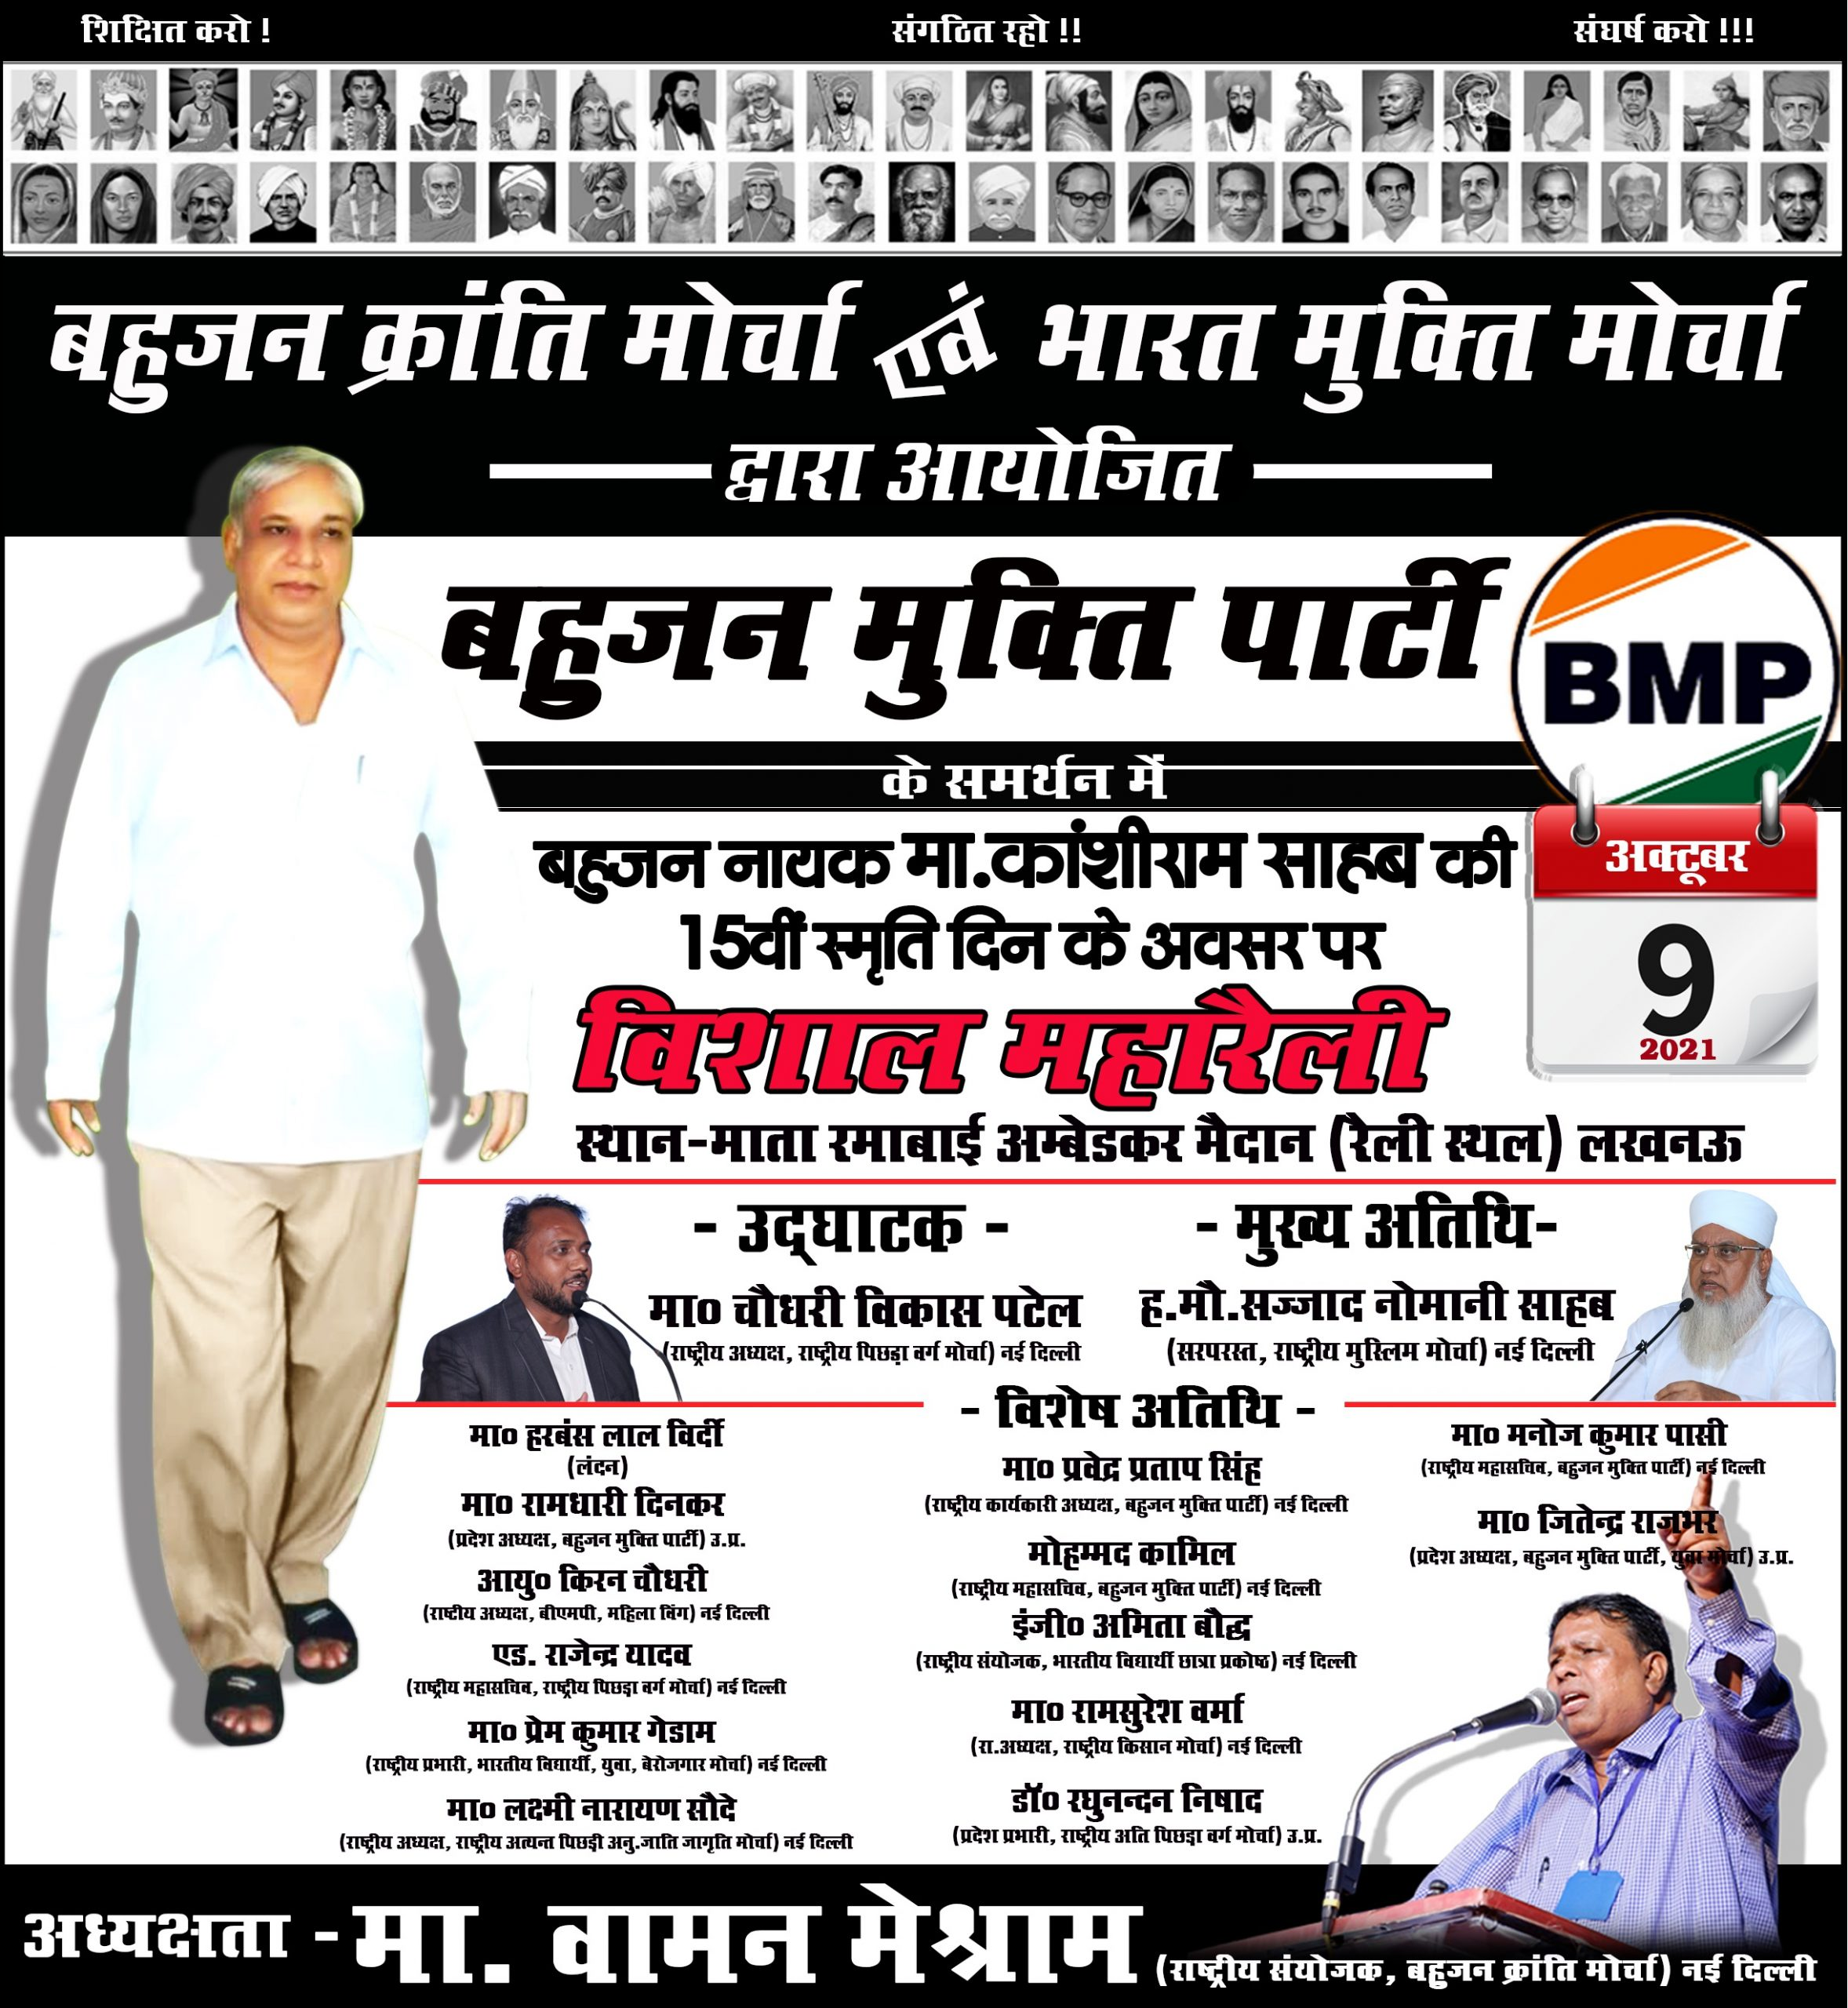 Massive Maharally in Lucknow on 9th October 2021 @11.00AM(IST)